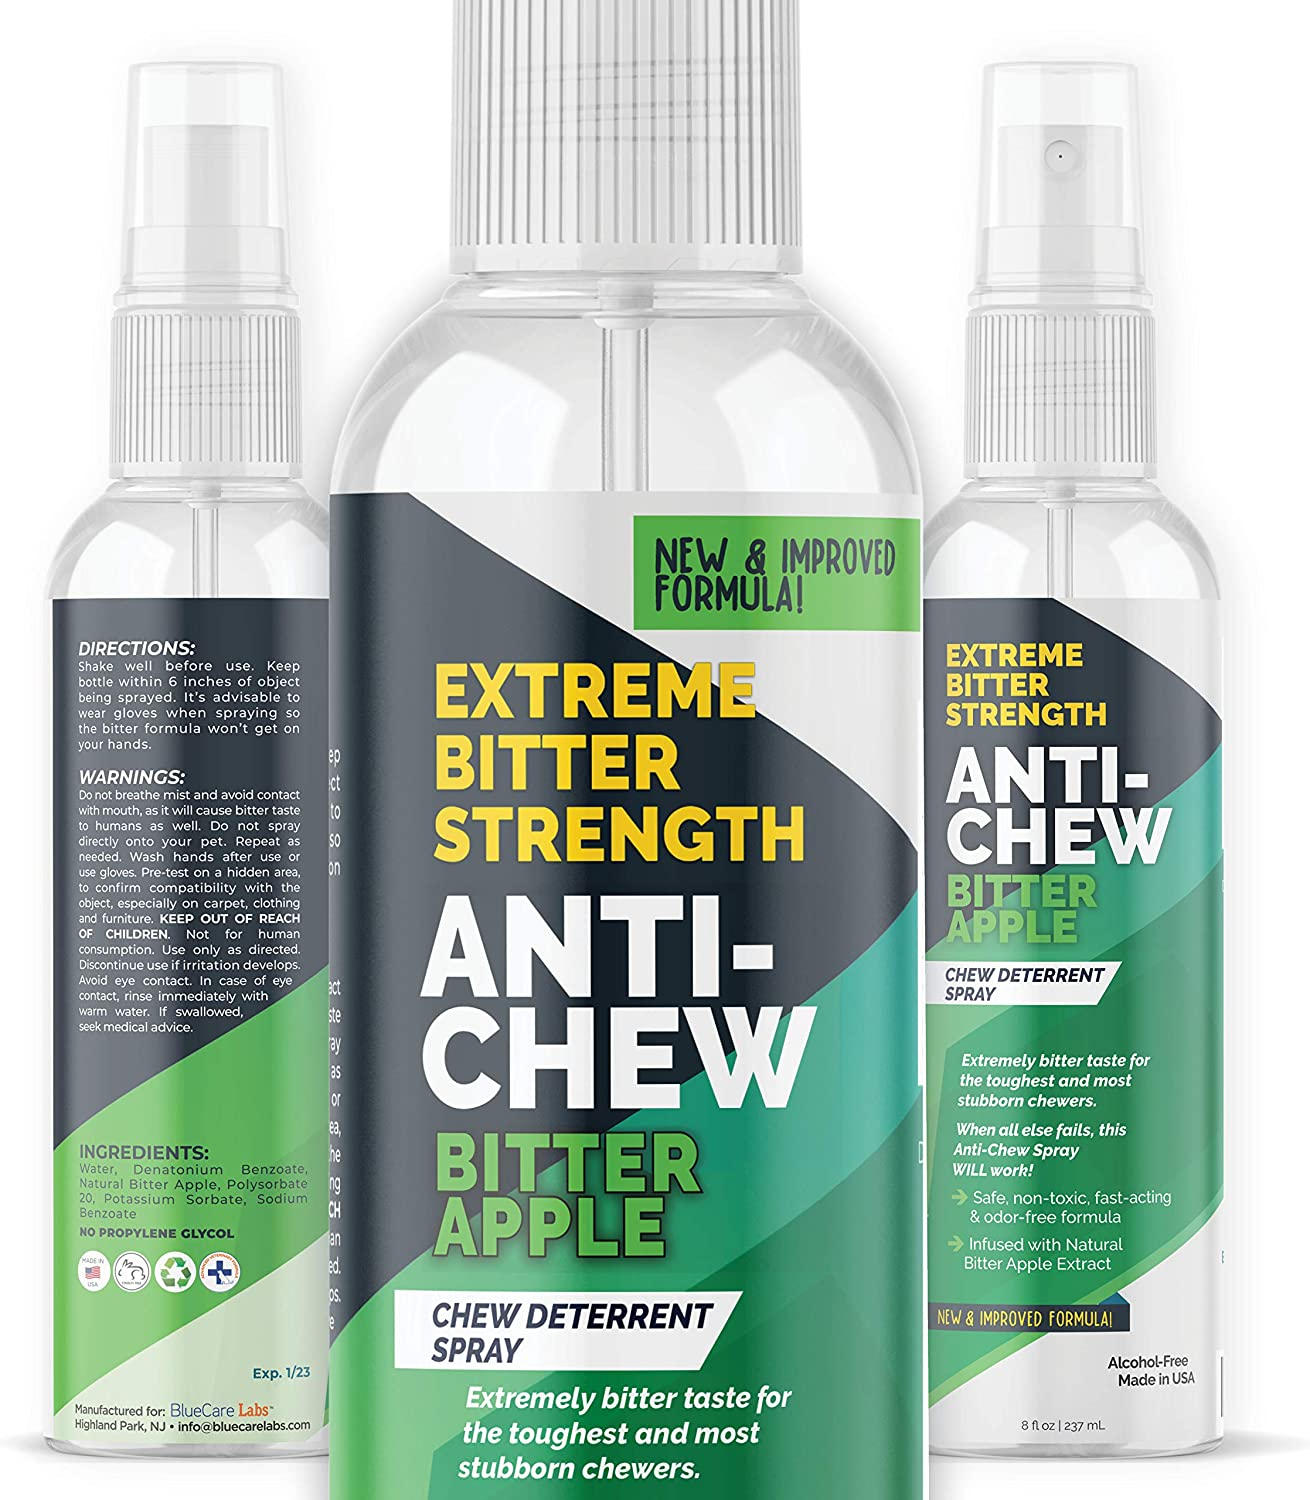 Bitter Apple Spray for Dogs to Stop Chewing Furniture & Household Items 5X Strength NO CHEW Spray - Natural, Alcohol Free & Non Toxic | Effective Anti Chew Deterrent Spray for Dogs | Made in USA 8oz.